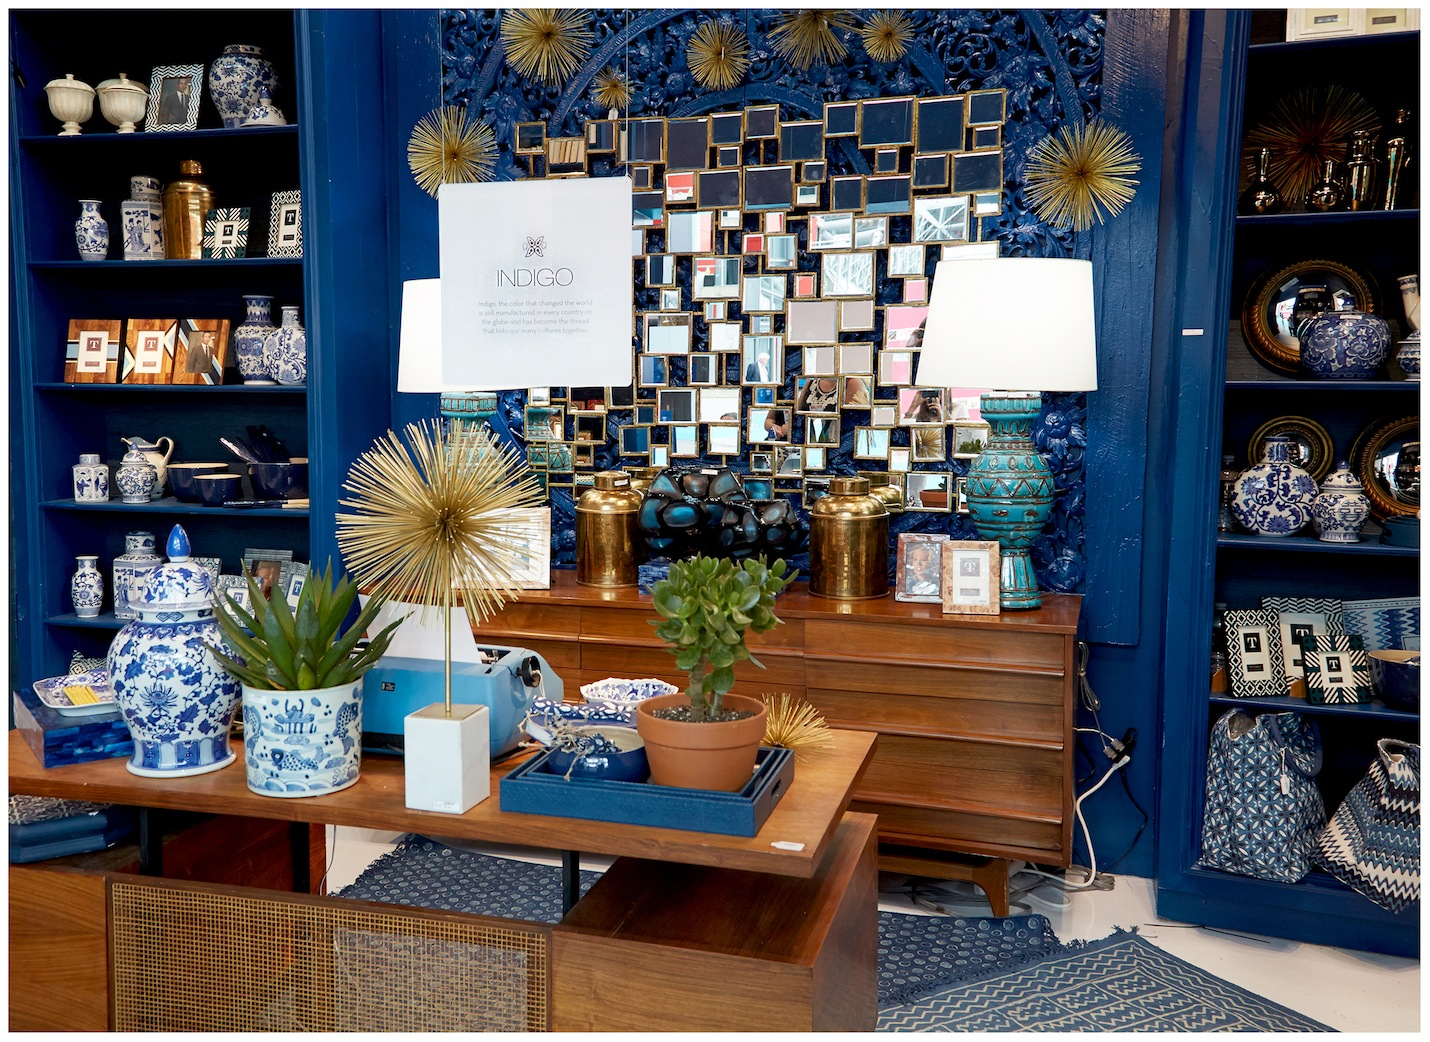 Two 39 s company at ny now home lifestyle market for Wholesale decor